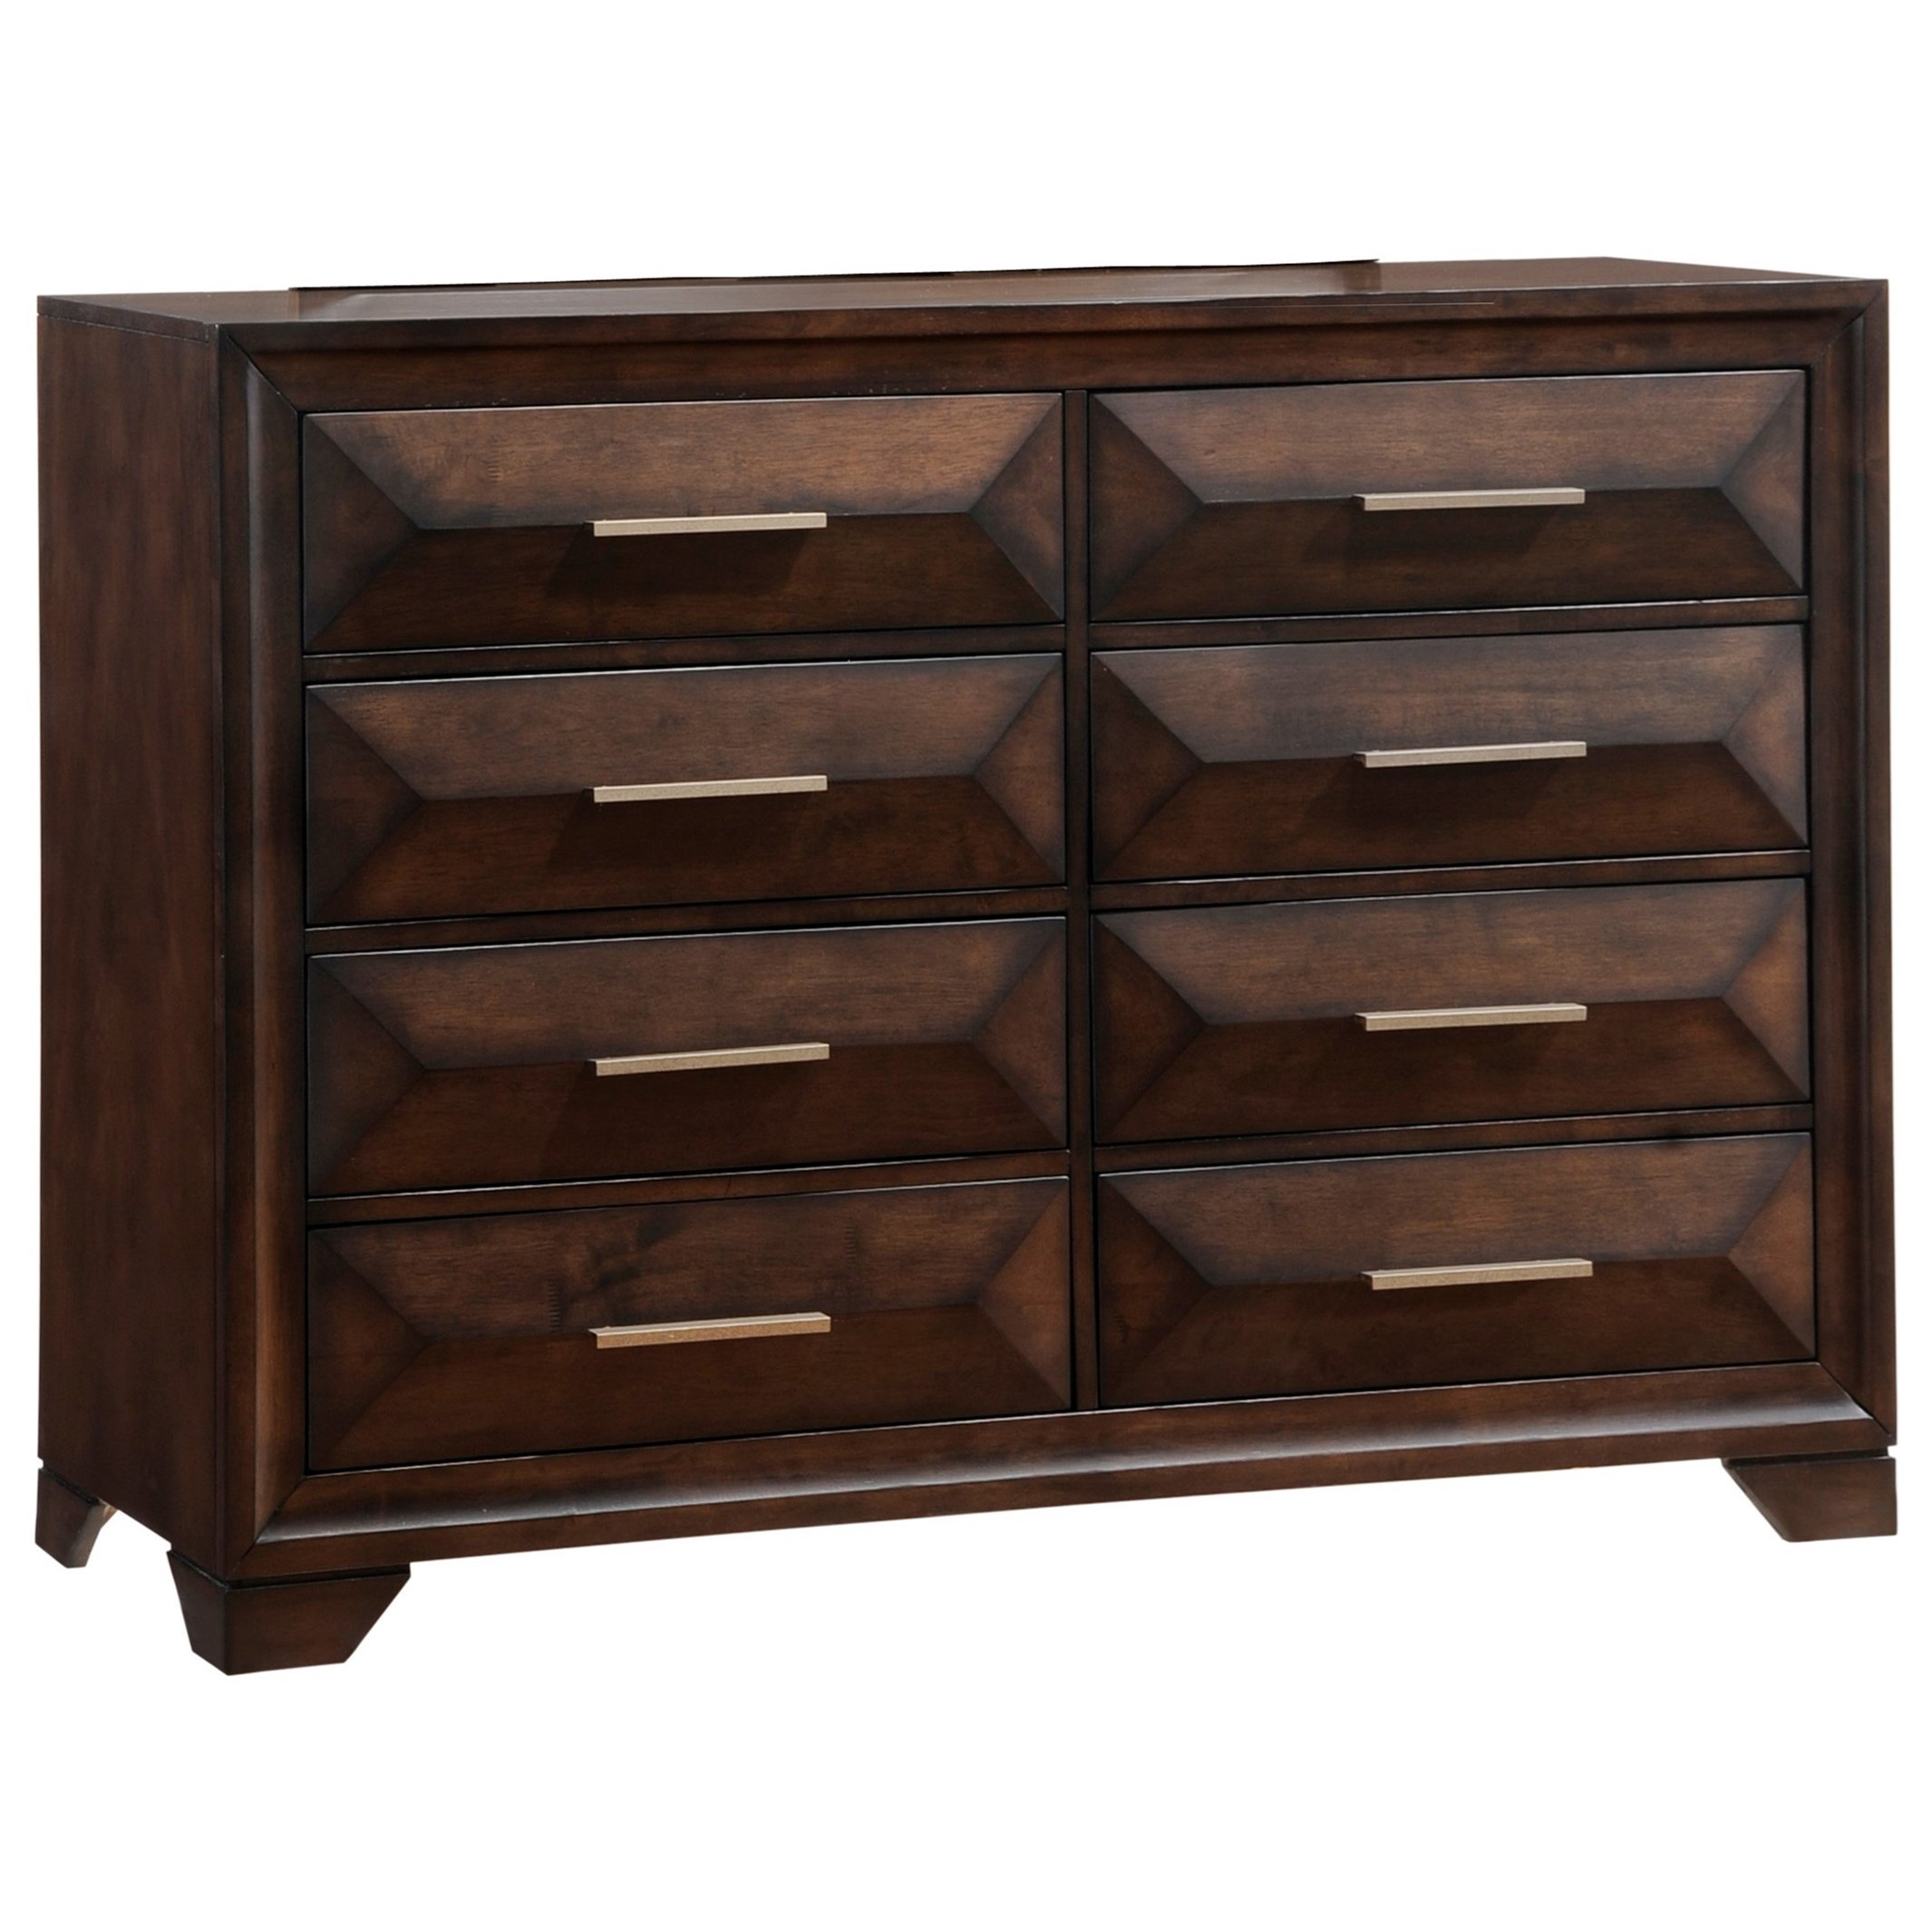 Anthem Drawer Dresser by Lane at Powell's Furniture and Mattress